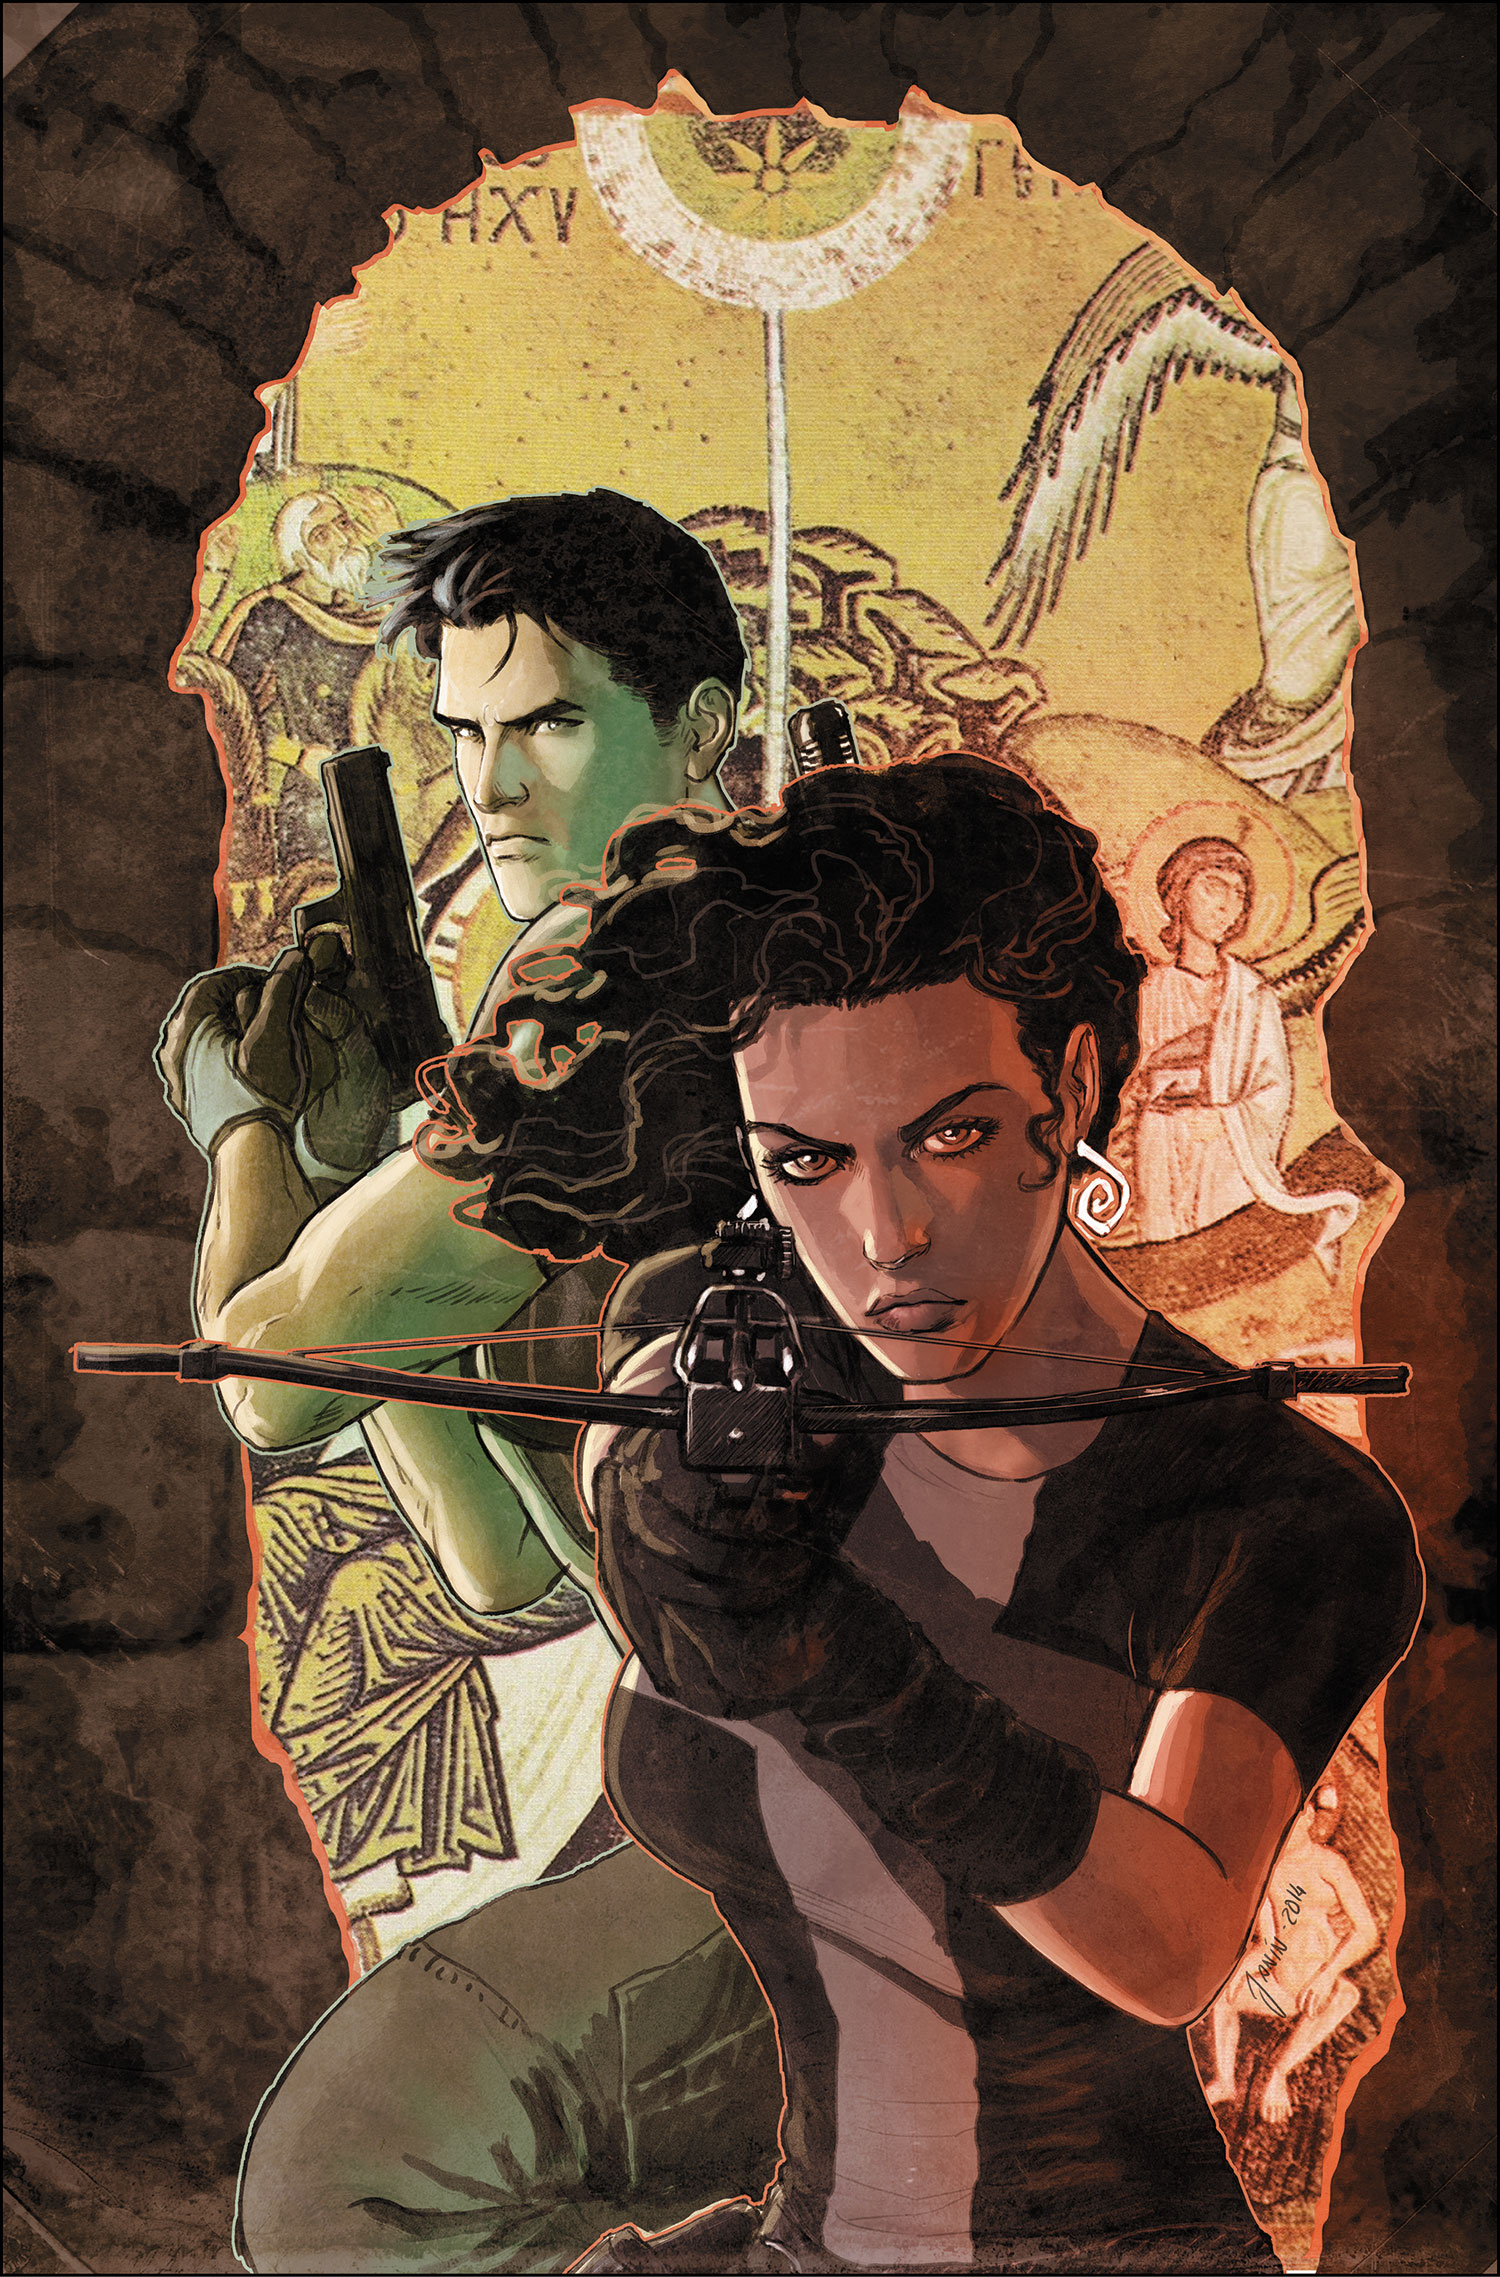 Cover art by Mikel Janin